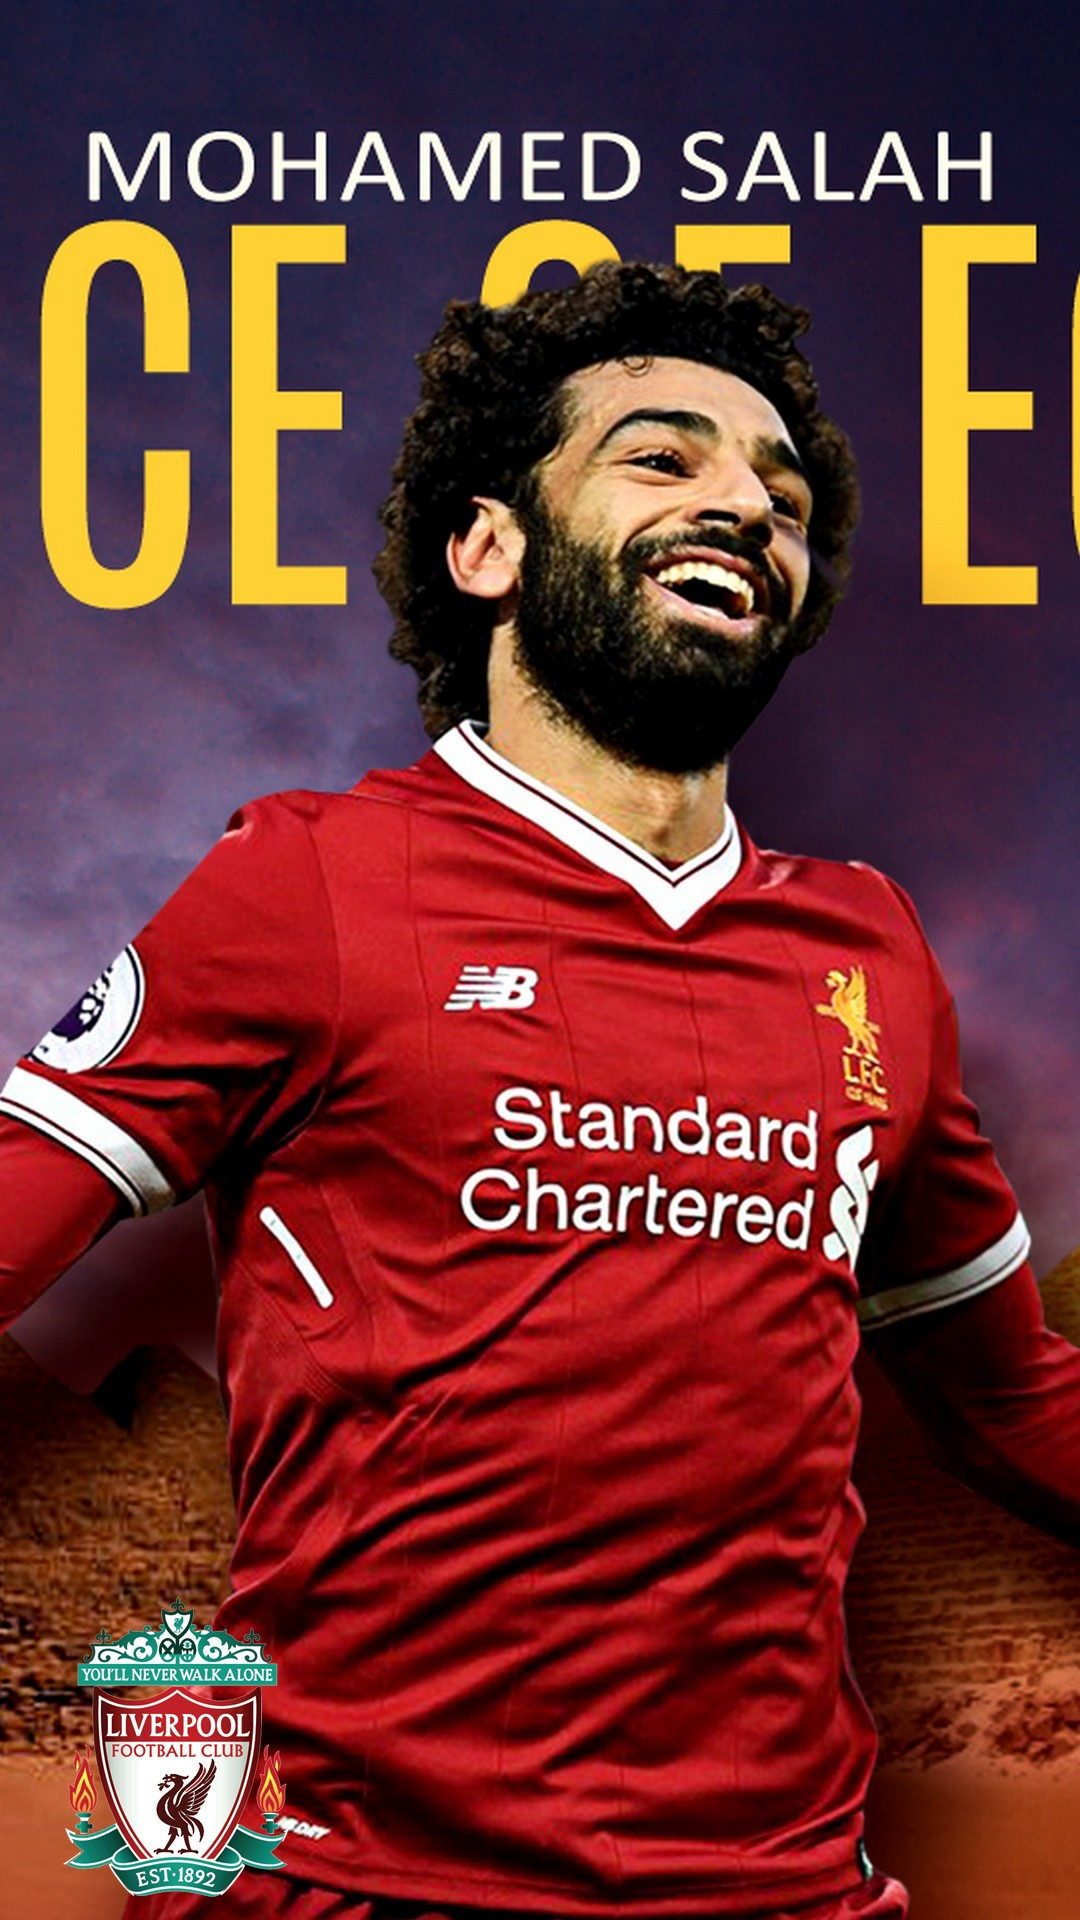 Best 3d Hd Wallpapers For Mobile Iphone X Wallpaper Mohamed Salah Liverpool 2019 3d